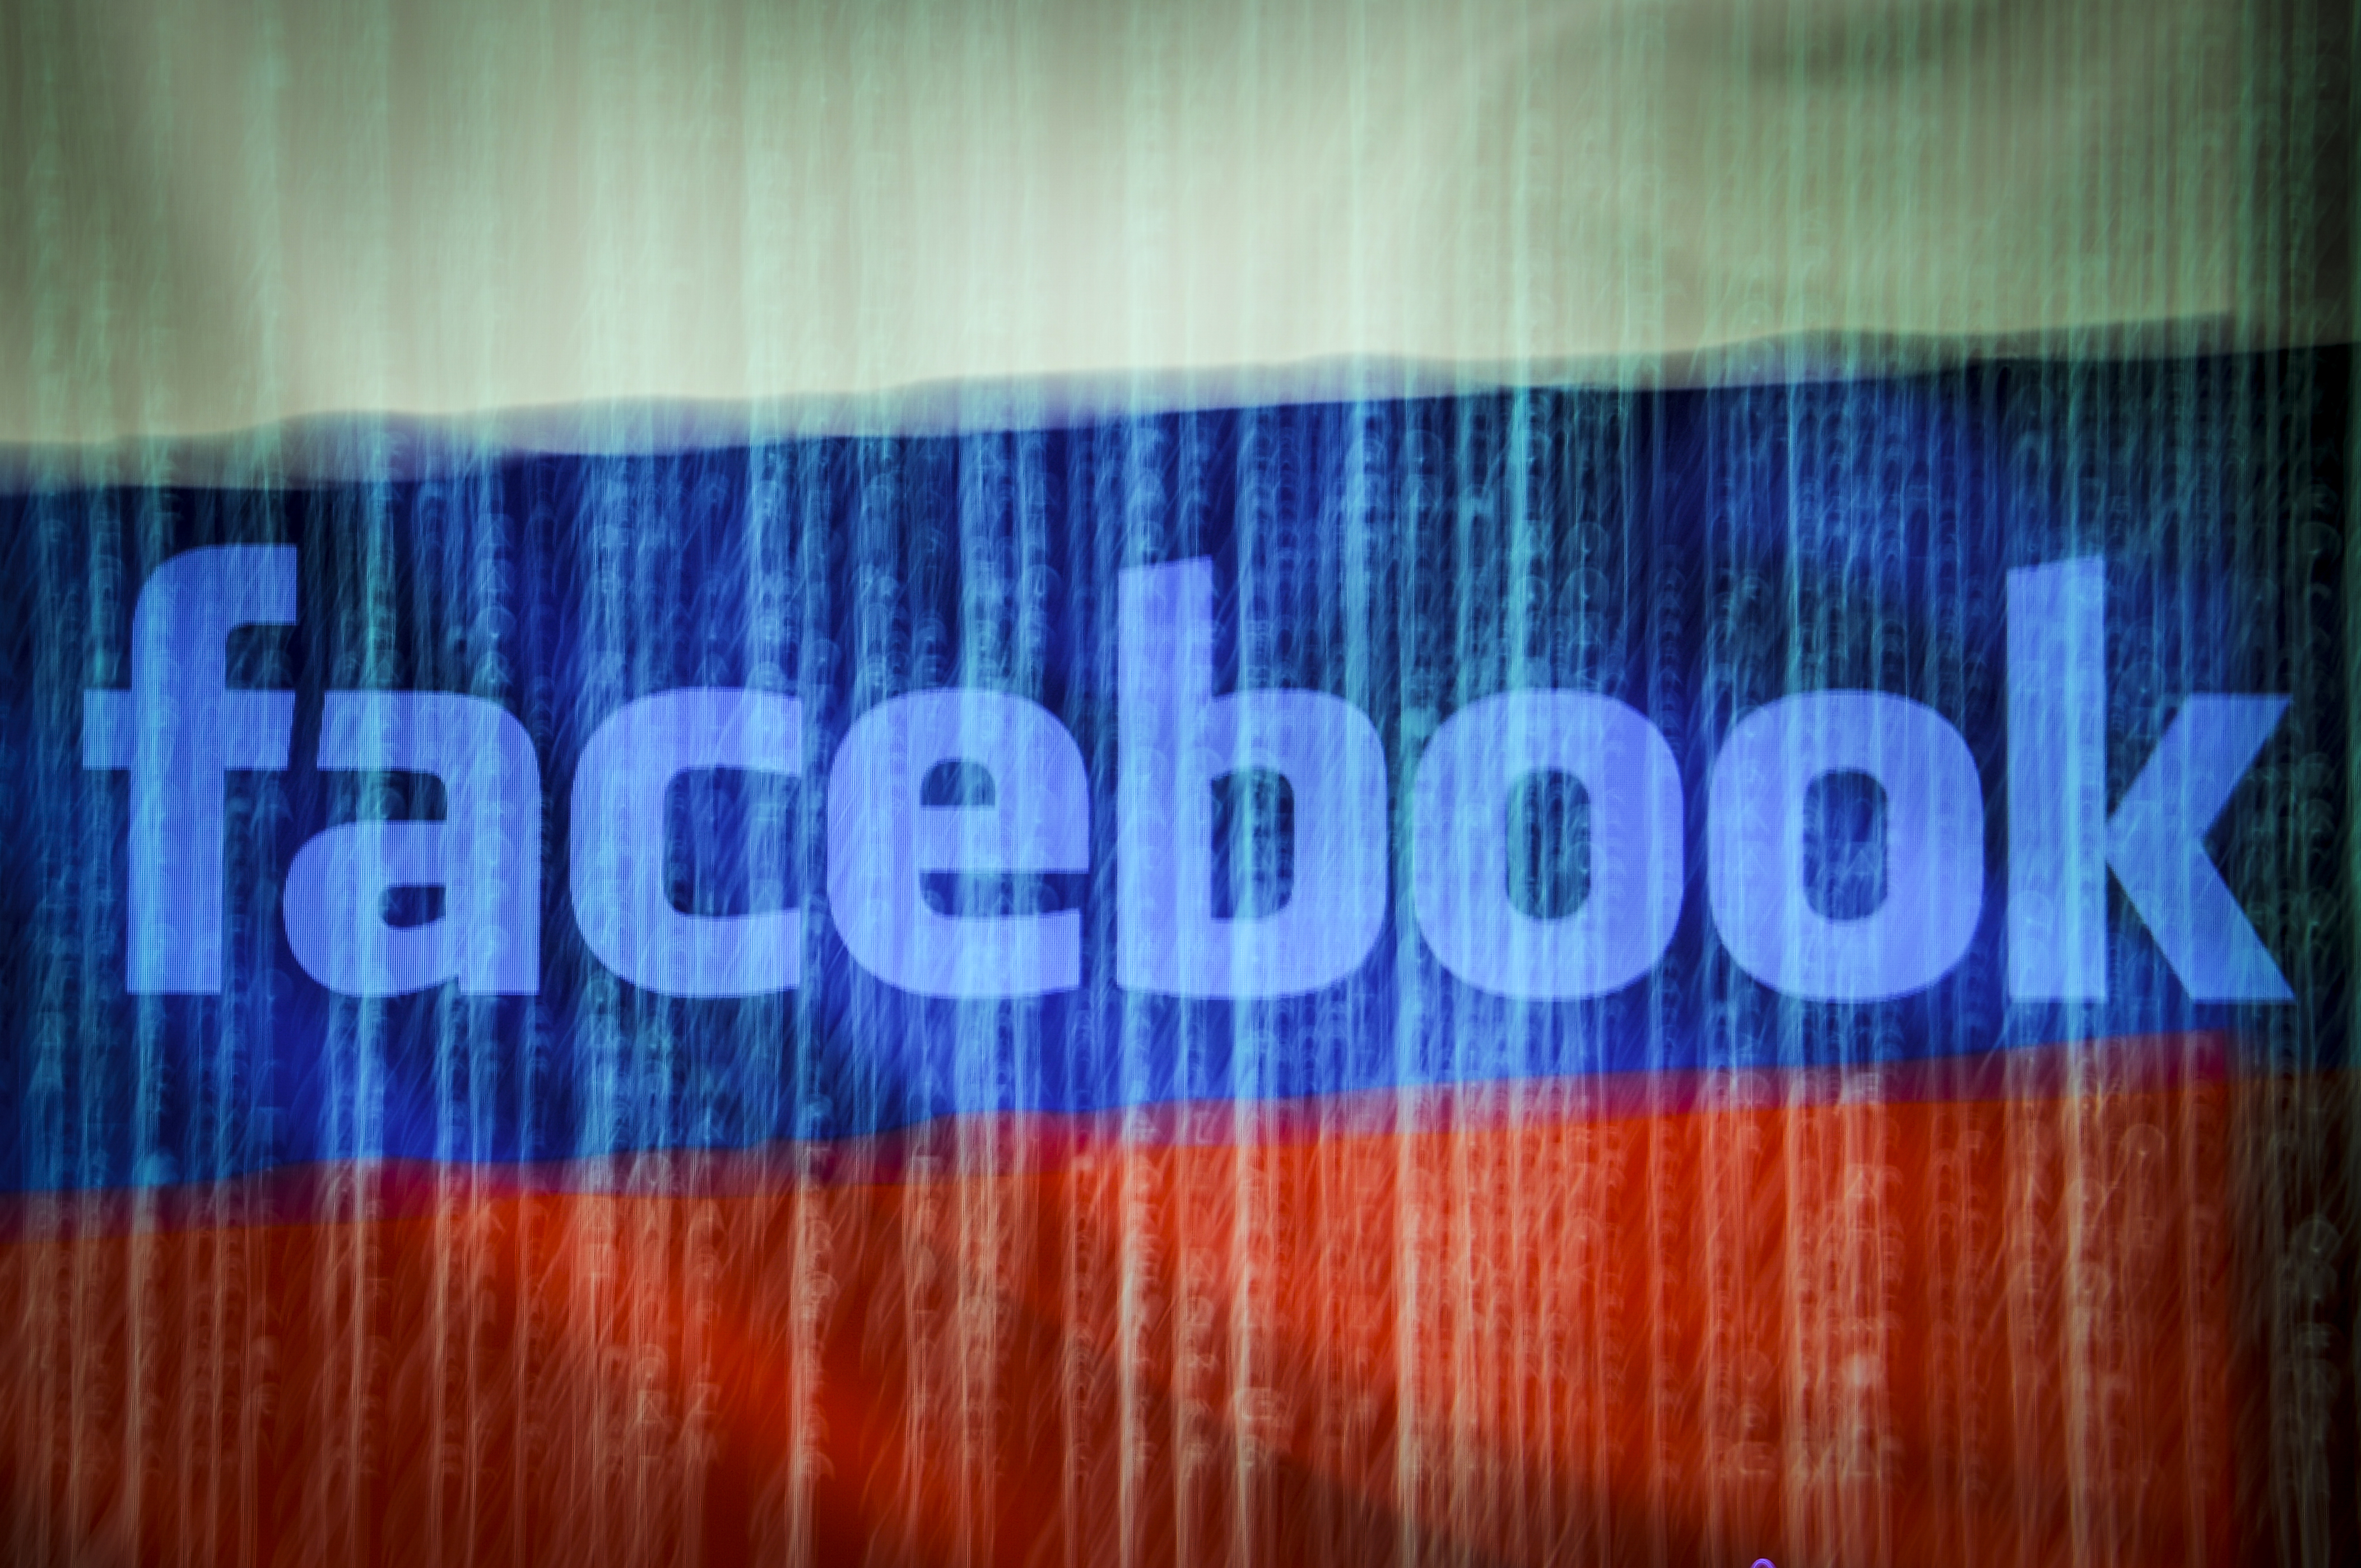 Russia backed Facebook material reached over 126 million Americans